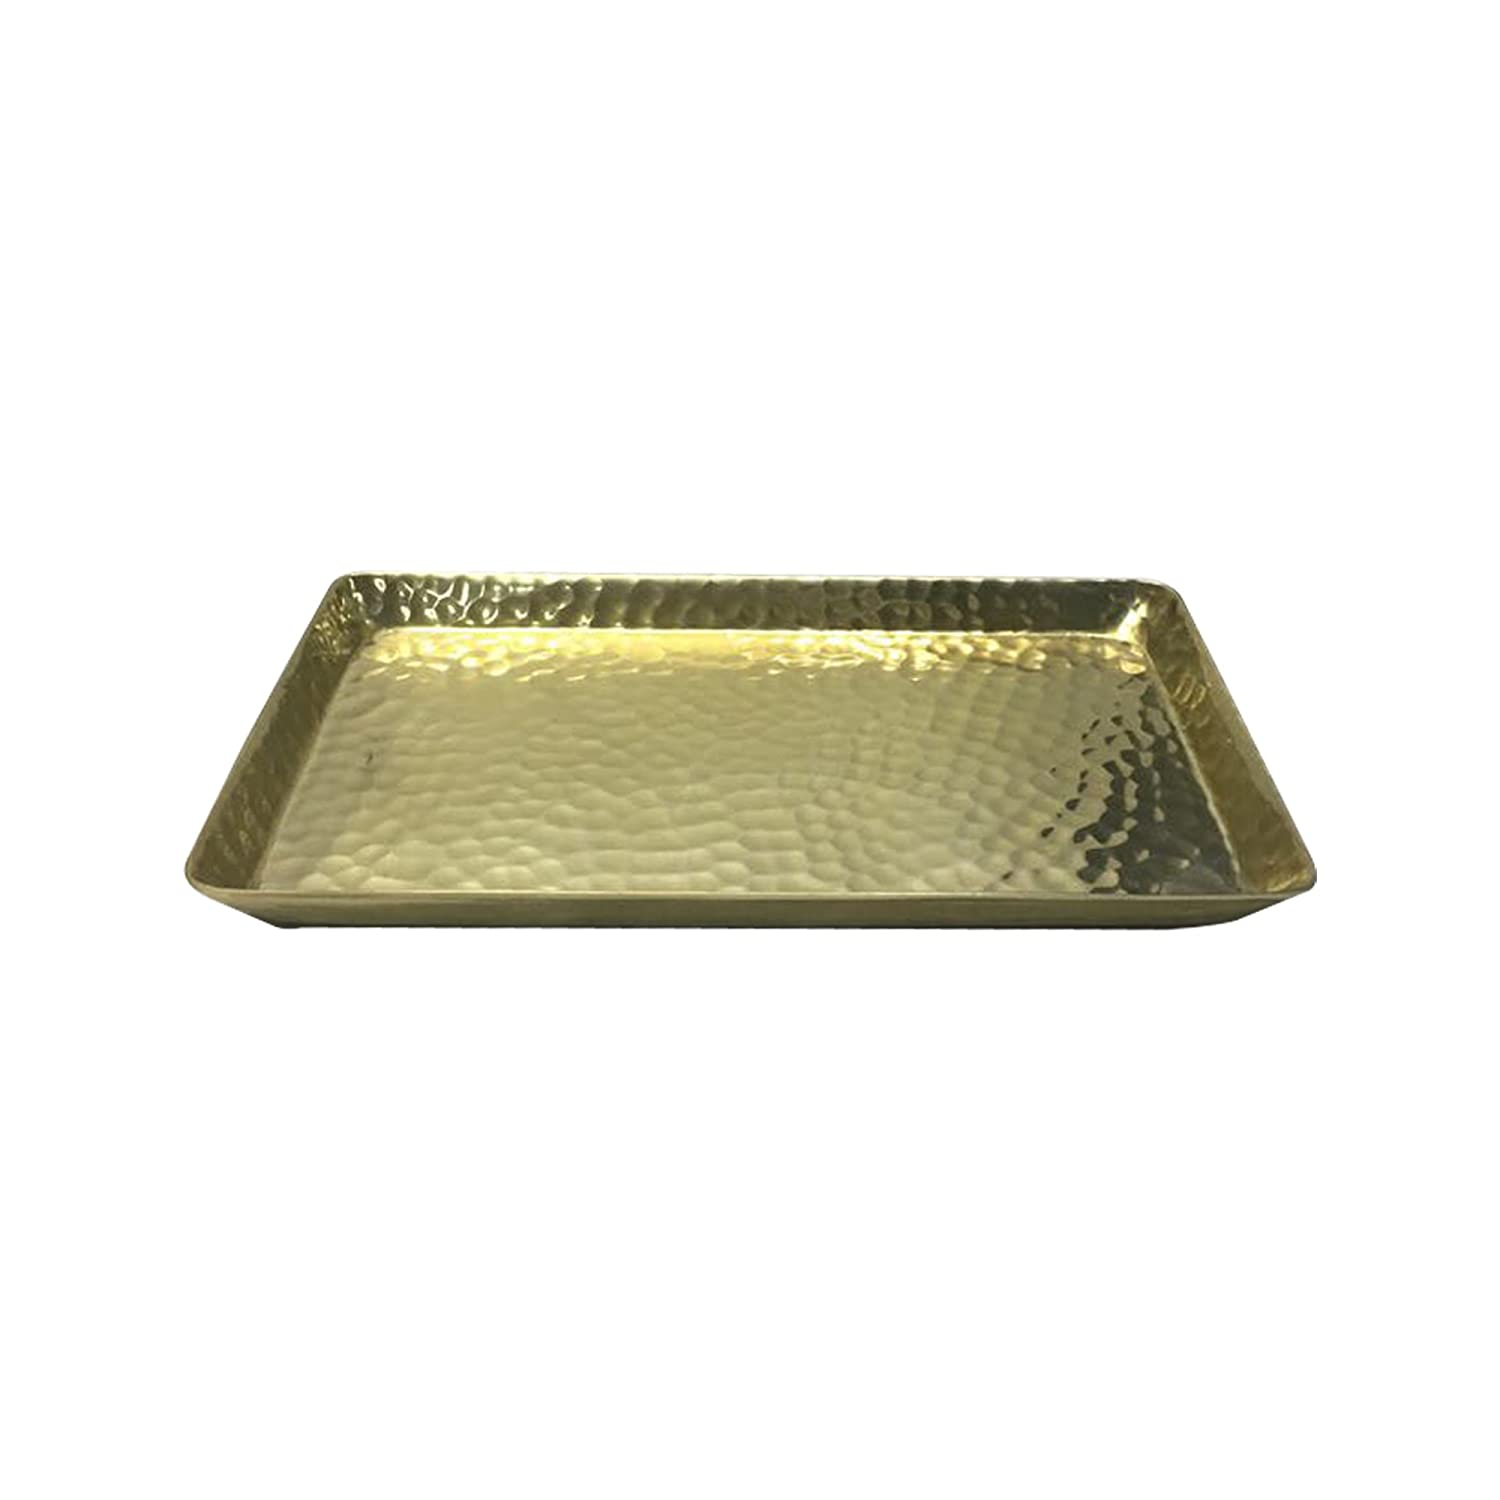 nu steel Gold Hammered Vanity Tray Tatara Group HRT10SG